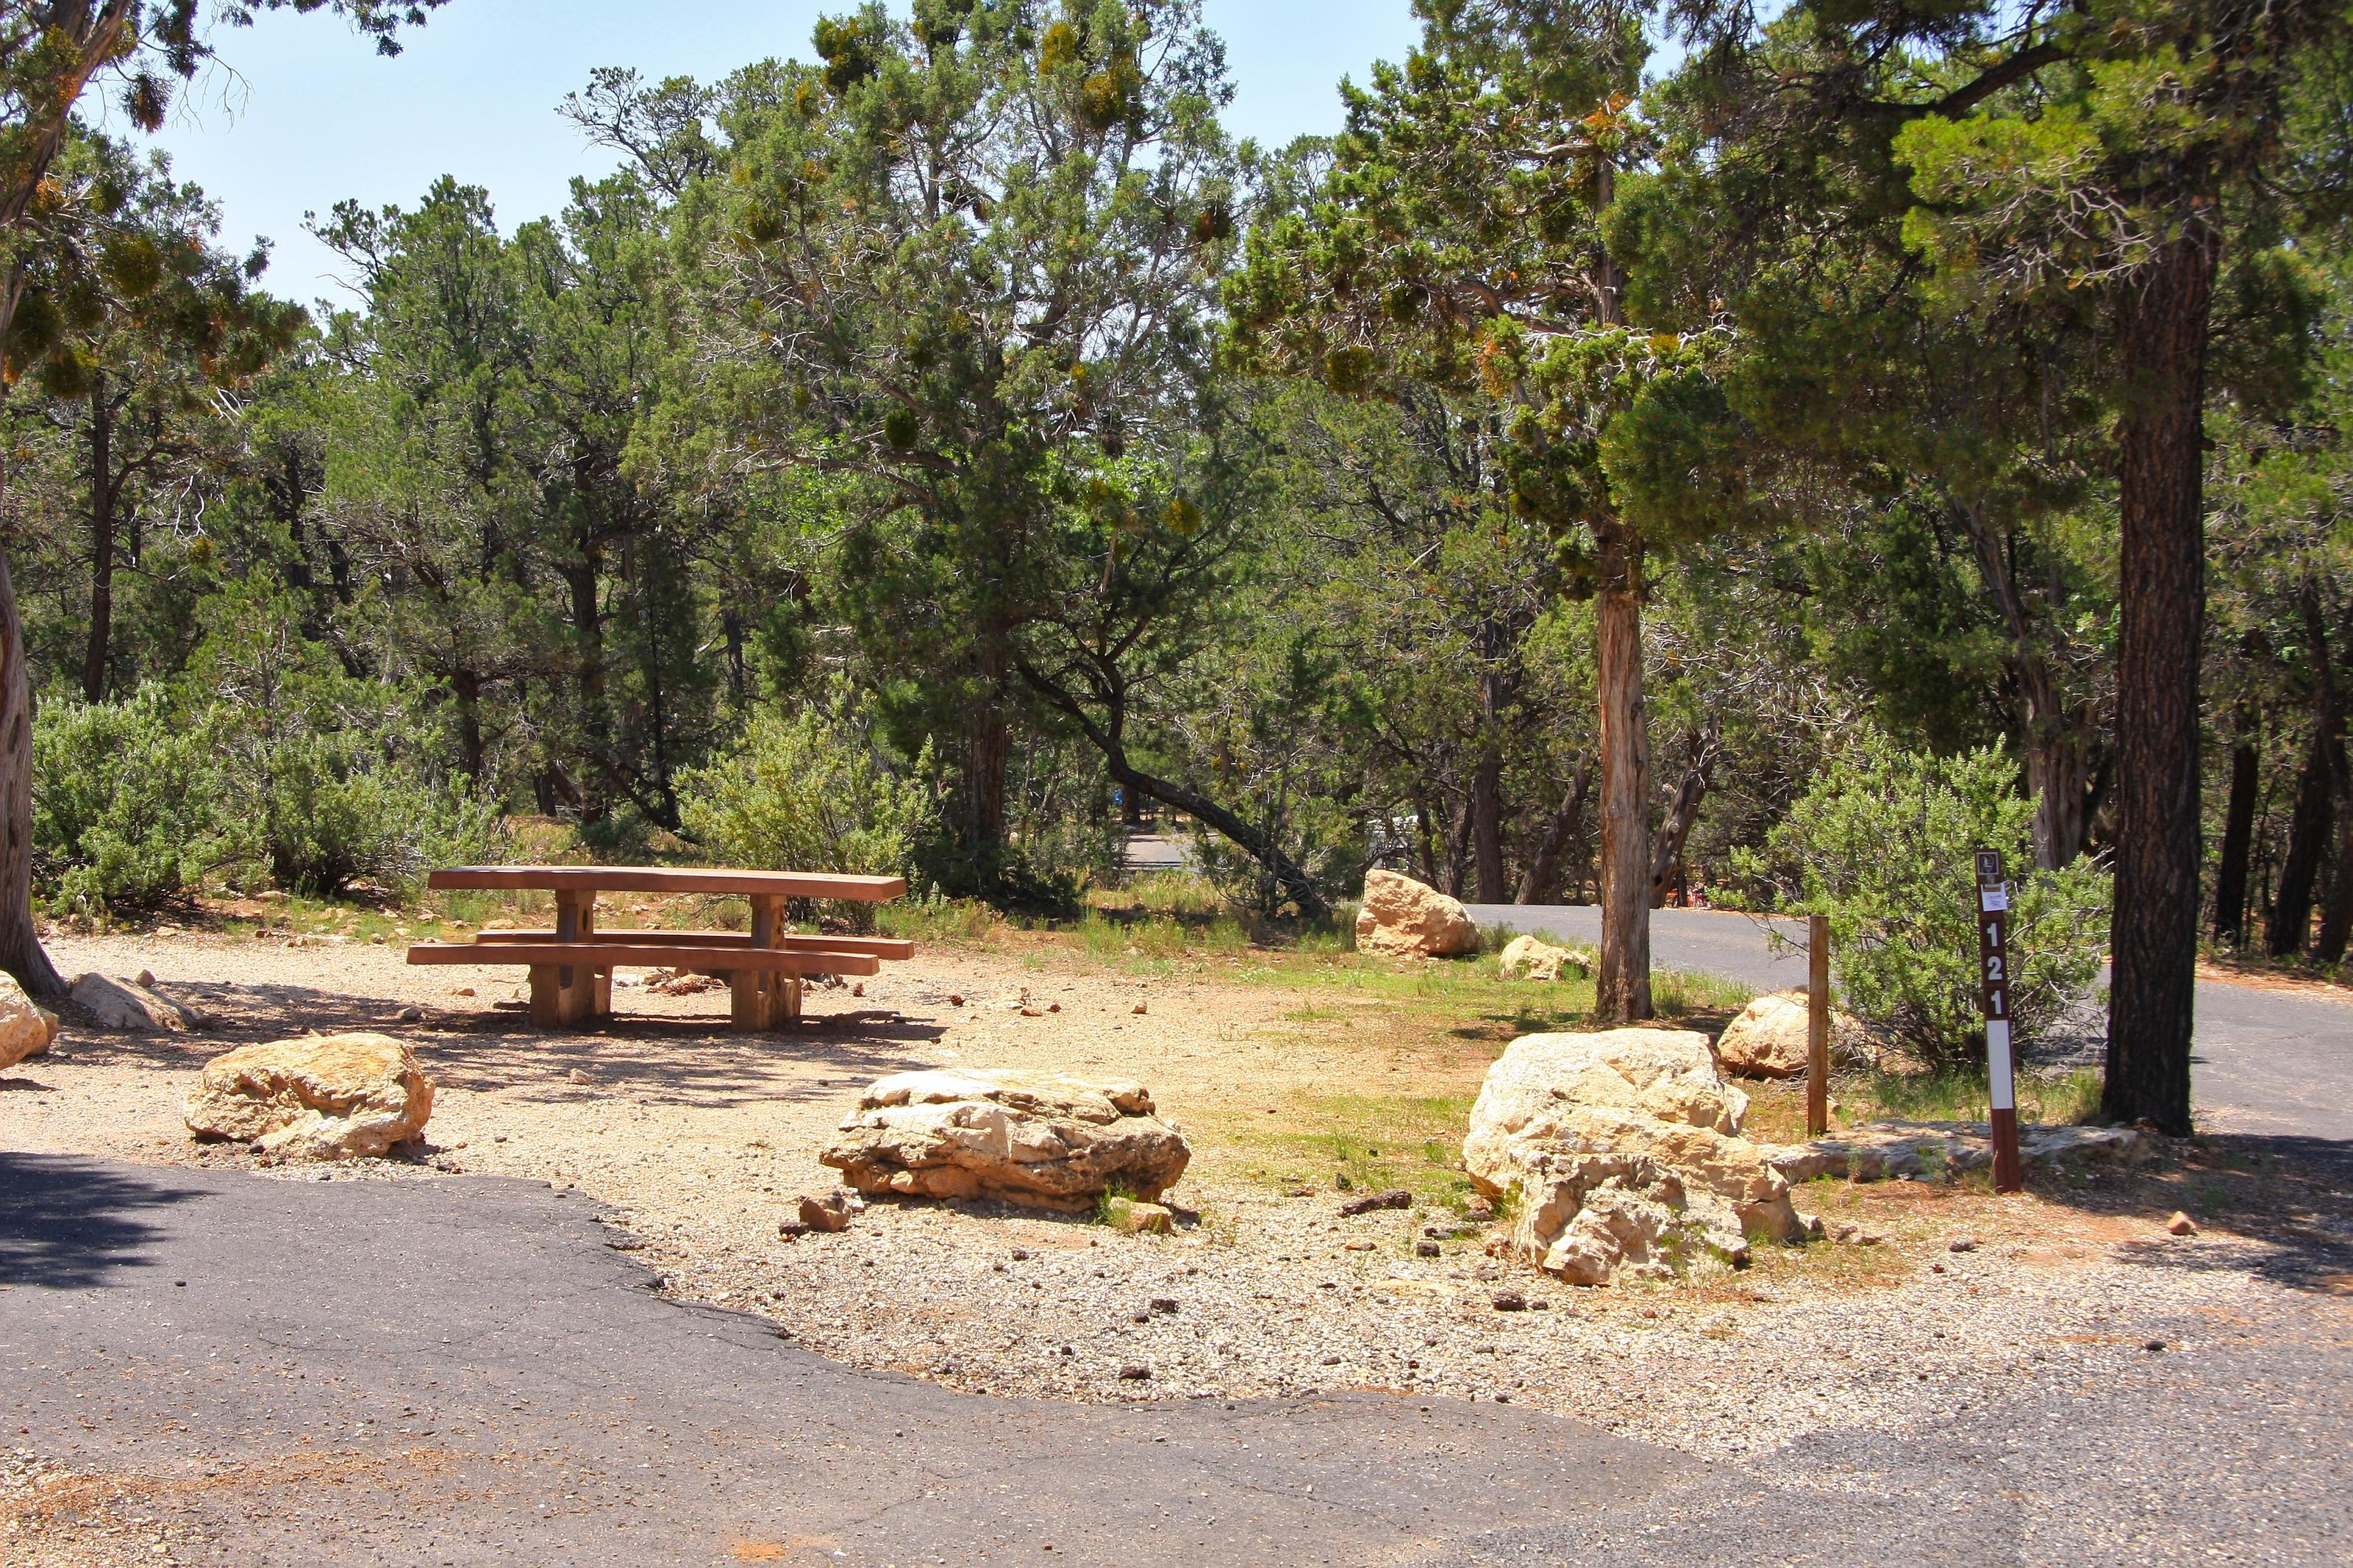 Picnic table, fire pit, and parking spot, Mather CampgroundPicnic table, fire pit, and parking spot for Juniper Loop 121, Mather Campground